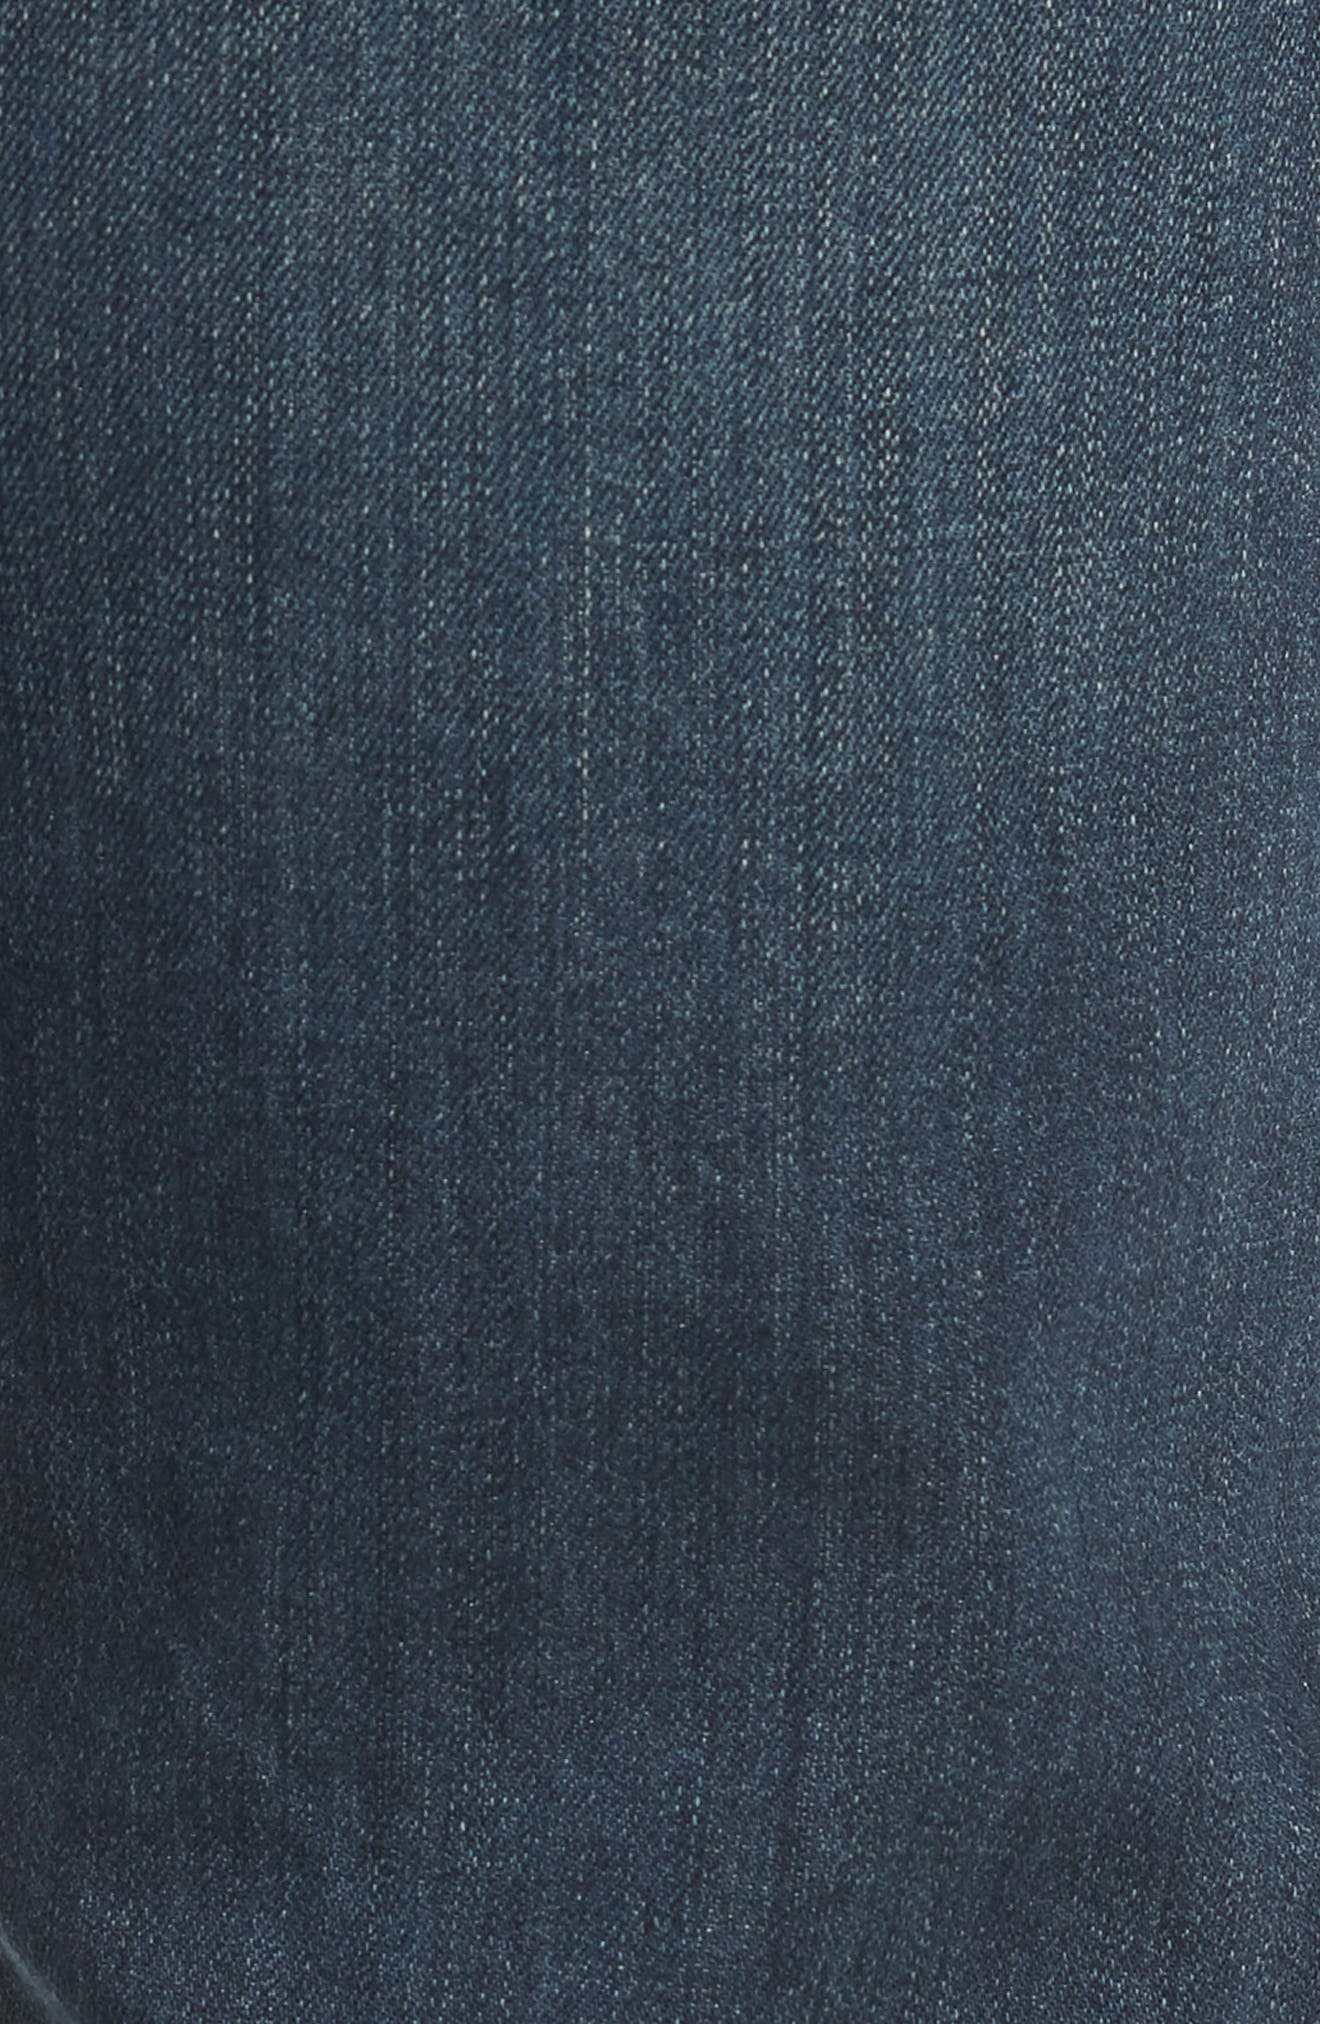 PERFORM - Bowery Slim Fit Jeans,                             Alternate thumbnail 5, color,                             424